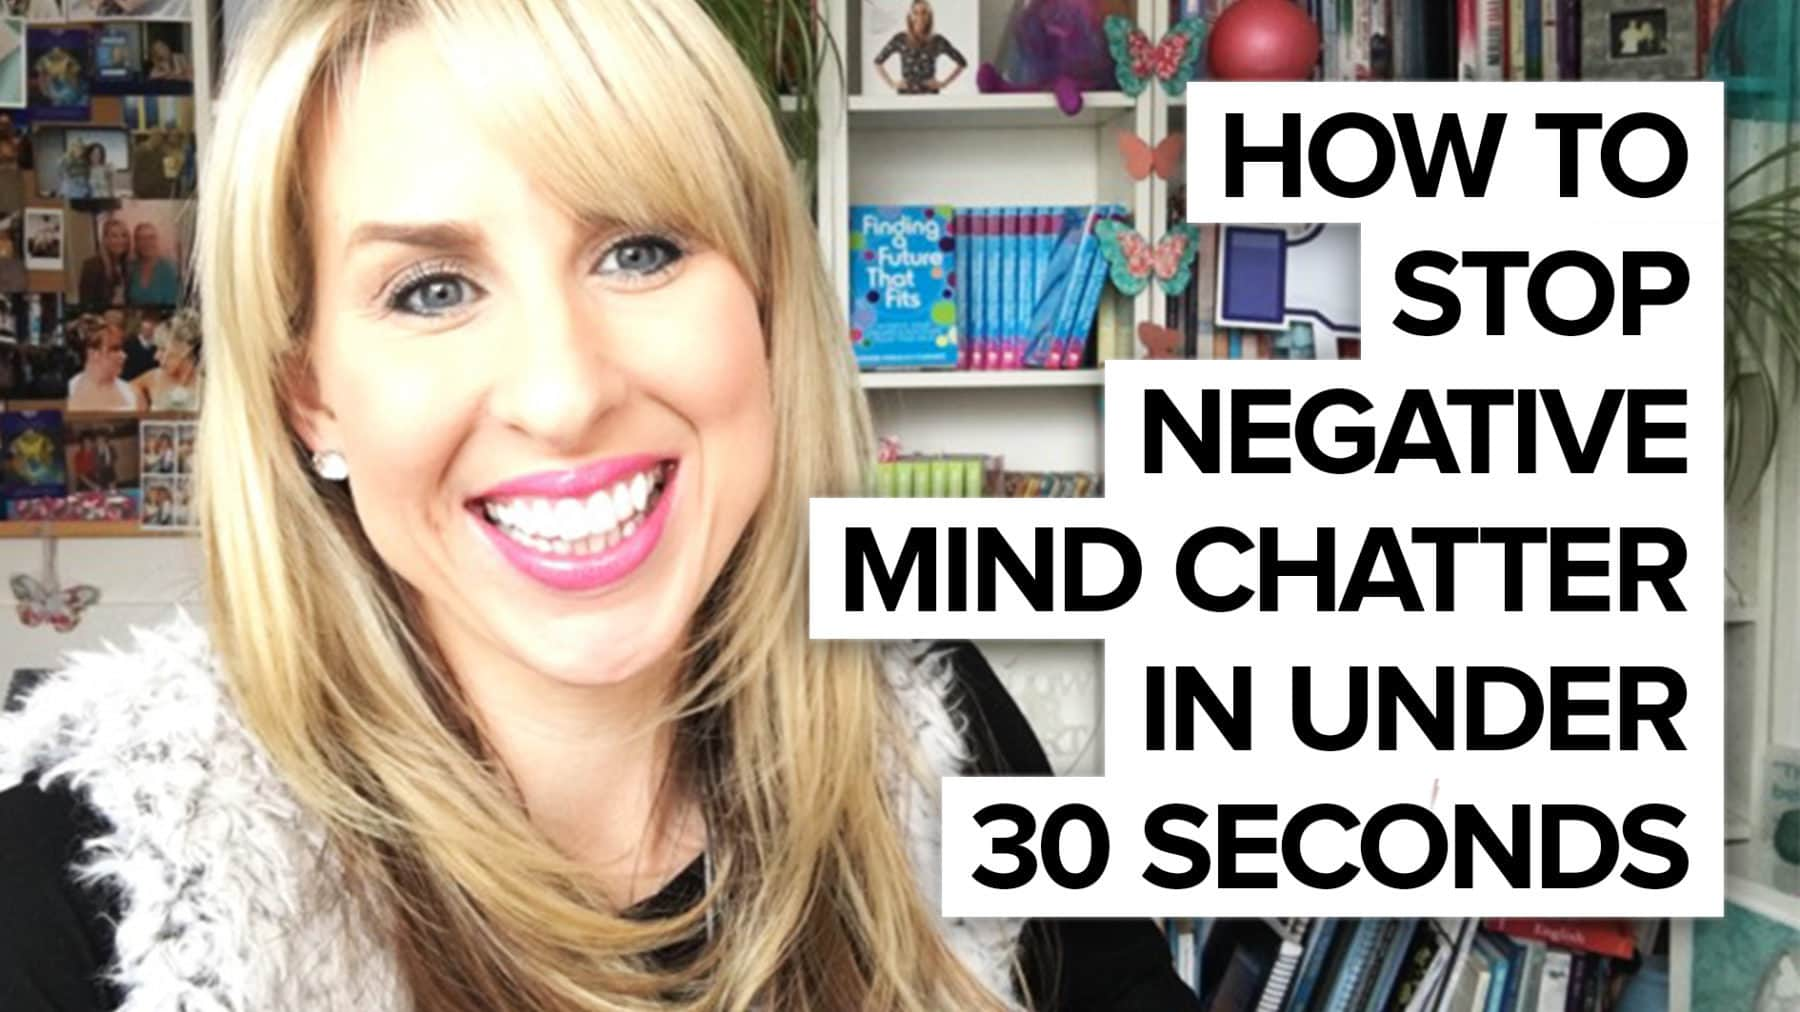 How to stop negative mind chatter in under 60 seconds